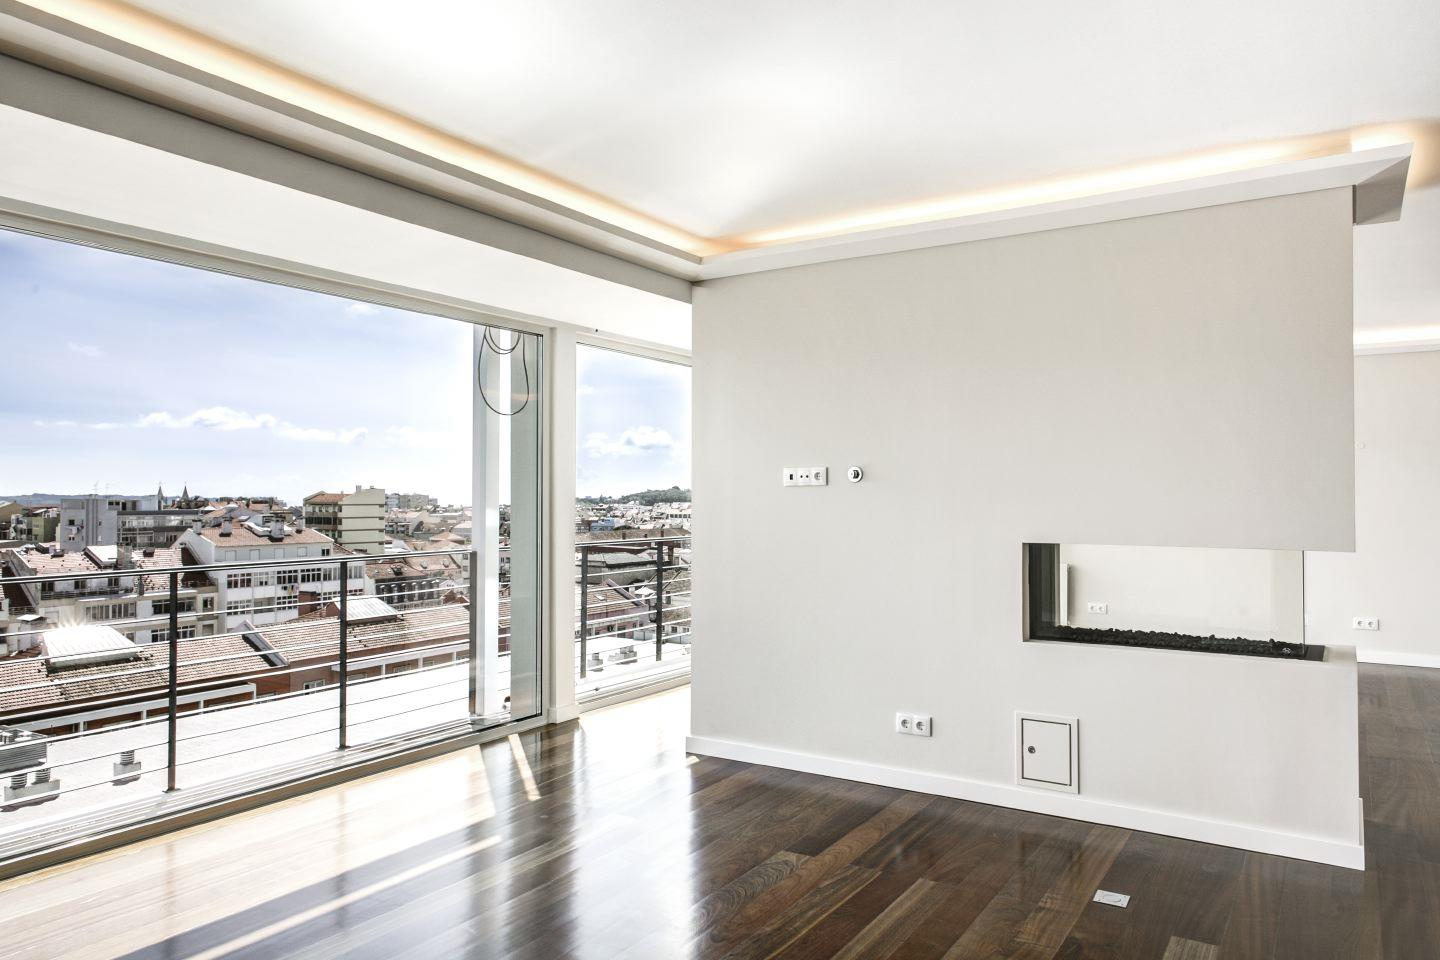 Apartamento para Venda às Flat, 3 bedrooms, for Sale Lisboa, Lisboa 1250-086 Portugal